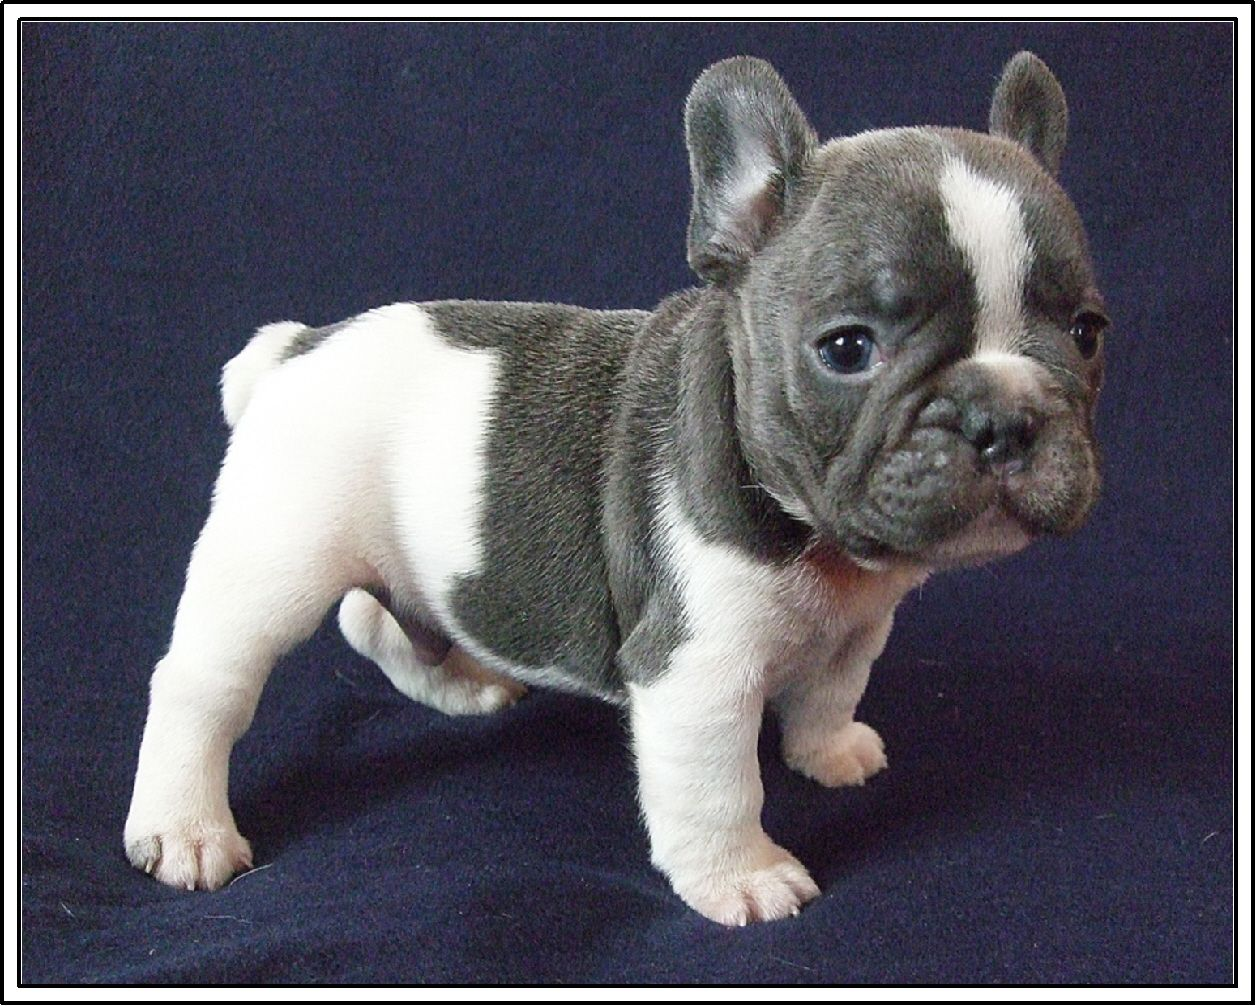 Pin By Sarah Mauldin On Fake Cute Baby Animals Cute Dogs French Bulldog Puppies